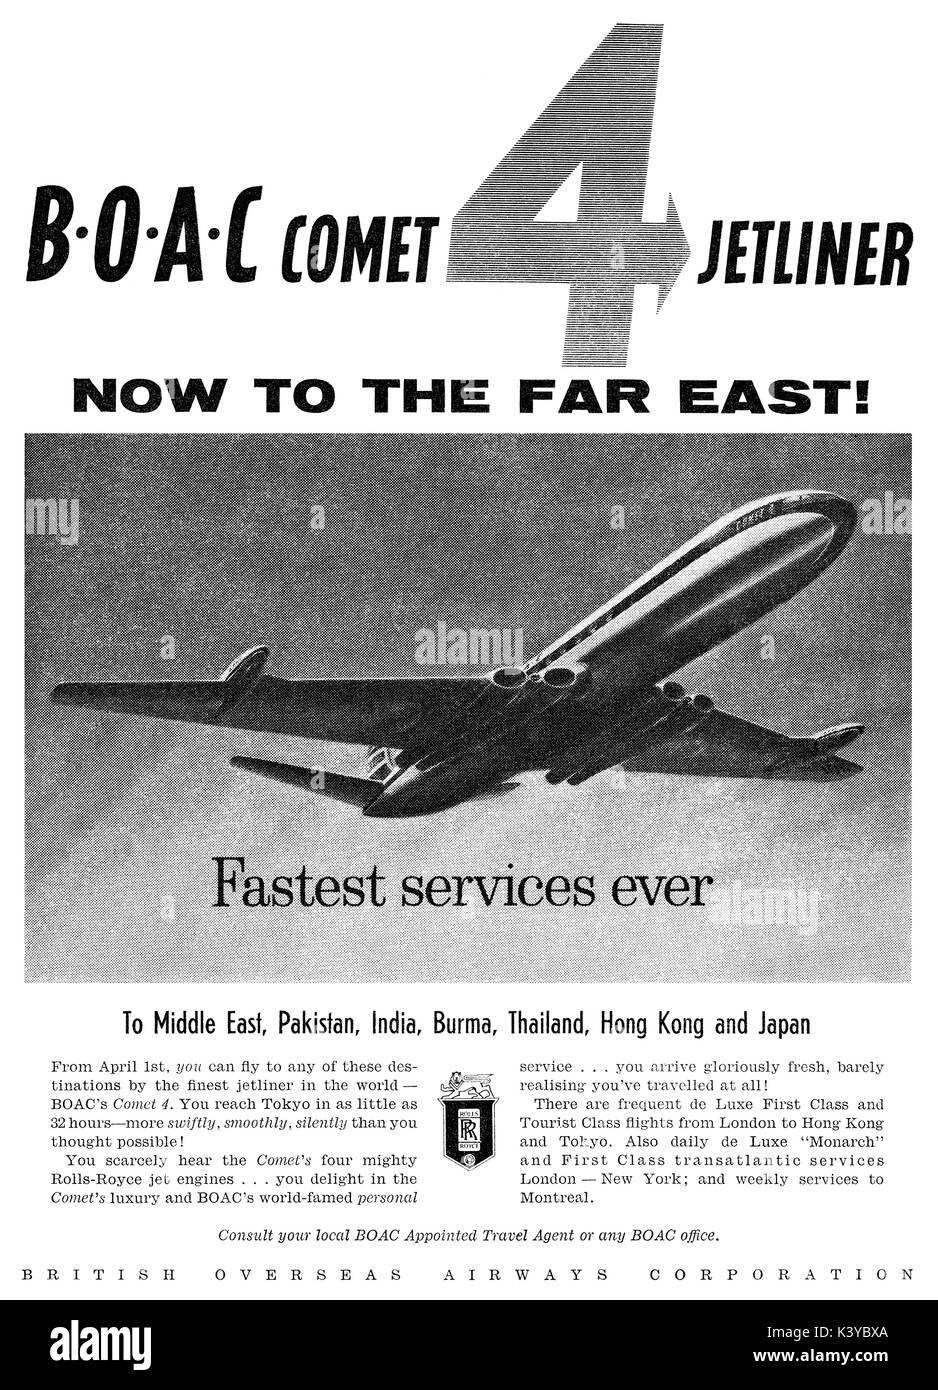 1959 British advertisement for B.O.A.C. featuring the de Havilland Comet 4 airliner. - Stock Image